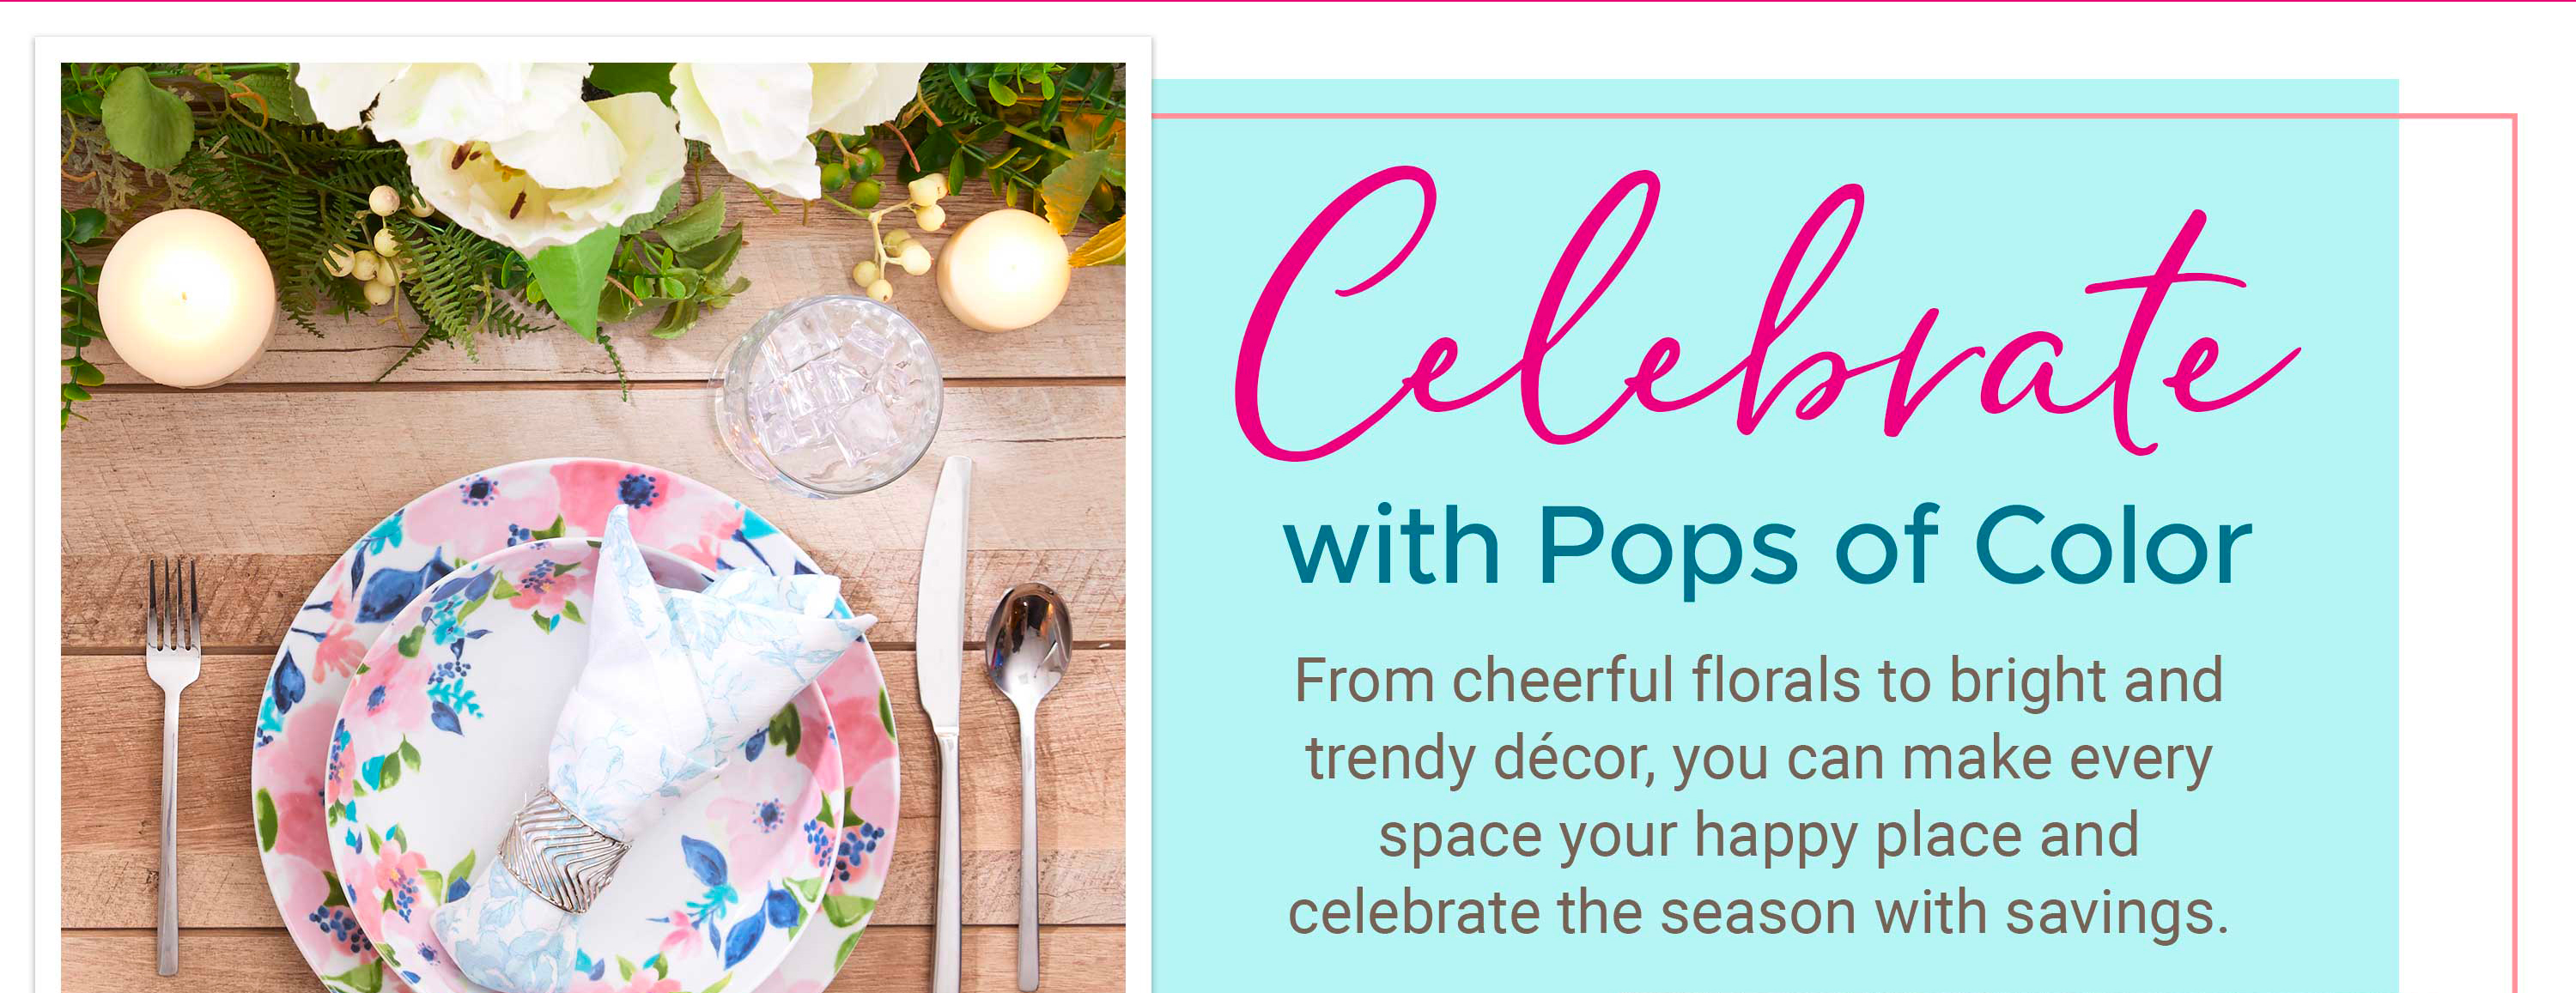 Celebrate with Pops of Color - From cheerful florals to bright and trendy decor, you can make every space your happy place and celebrate the season with savings.